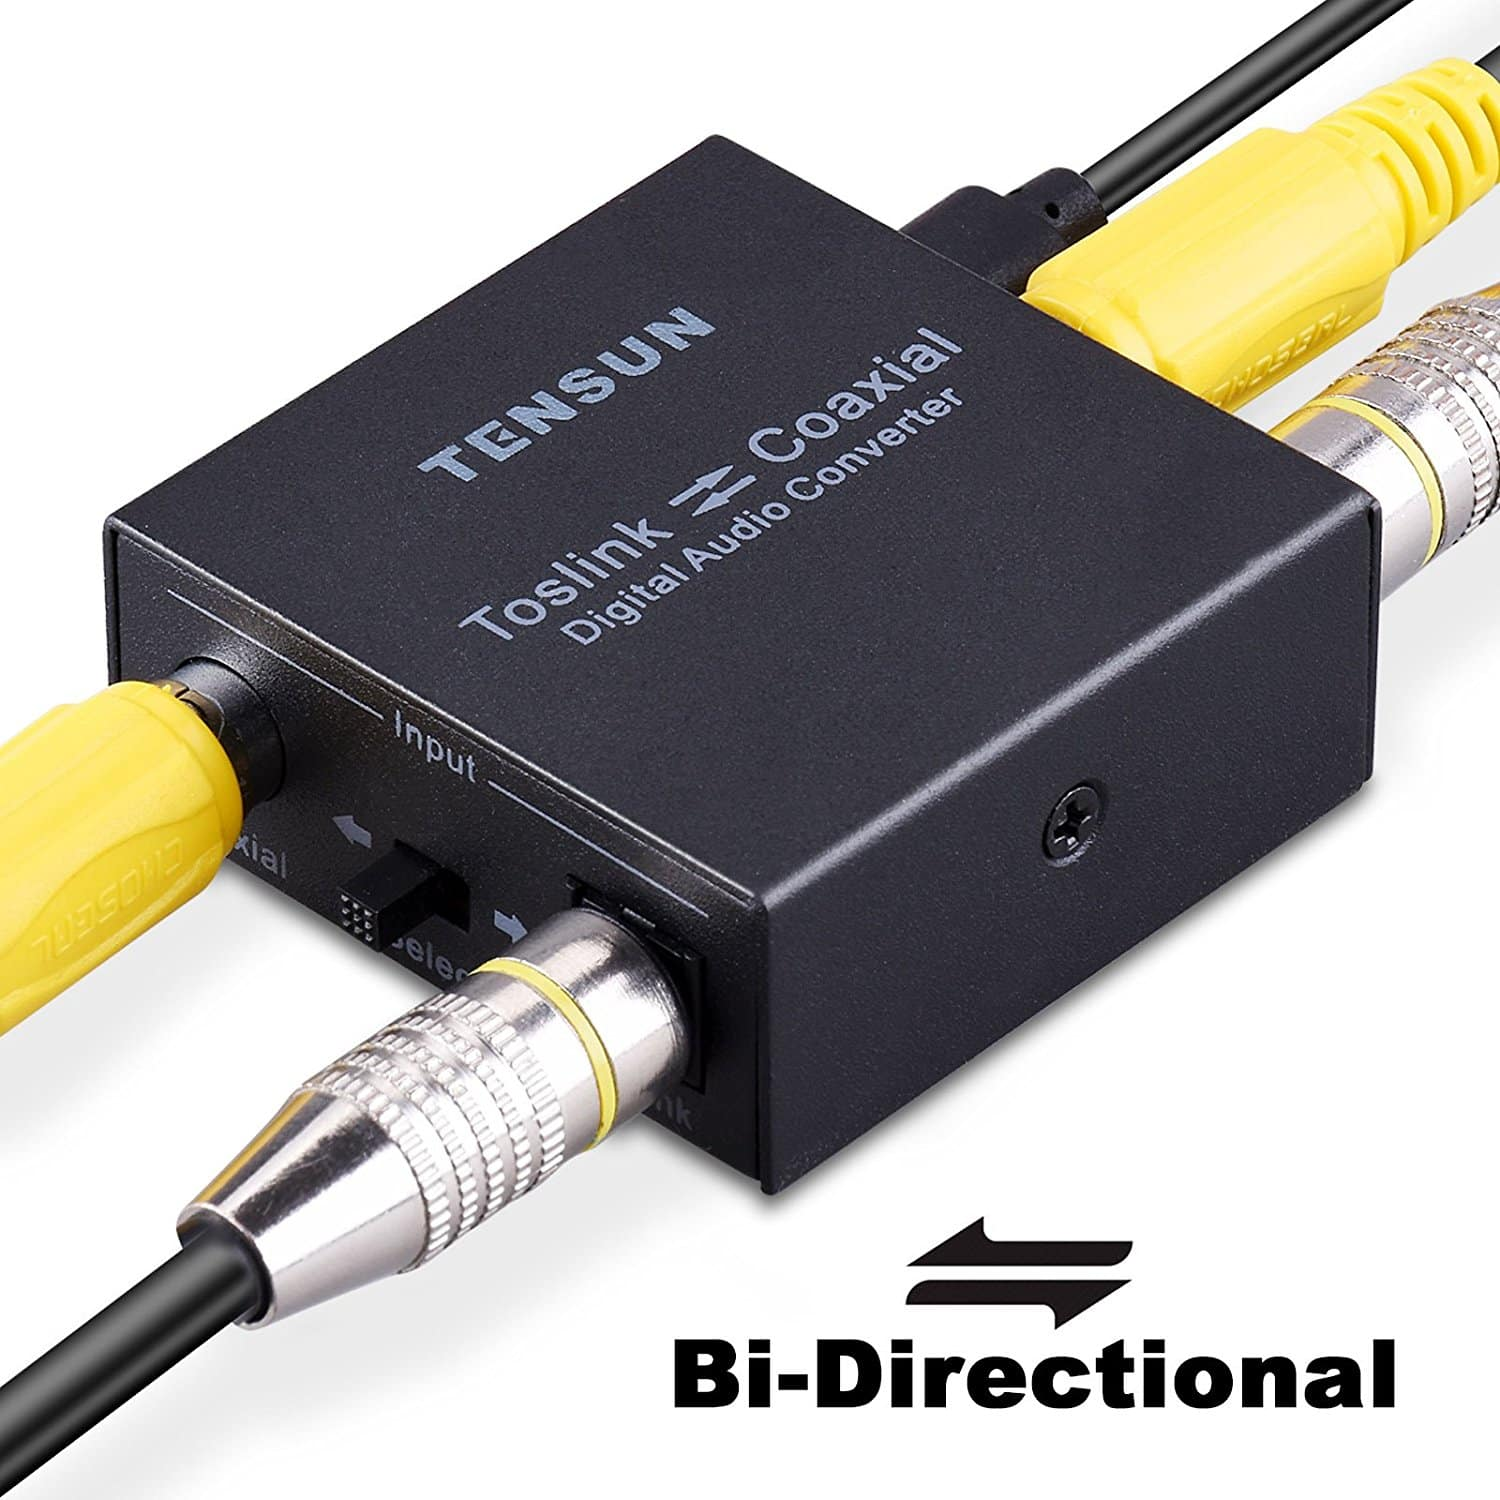 Optical to Coax and Coax Coaxial to SPDIF Toslink Bi-Directional Digital Audio Converter (Black) for $11.99